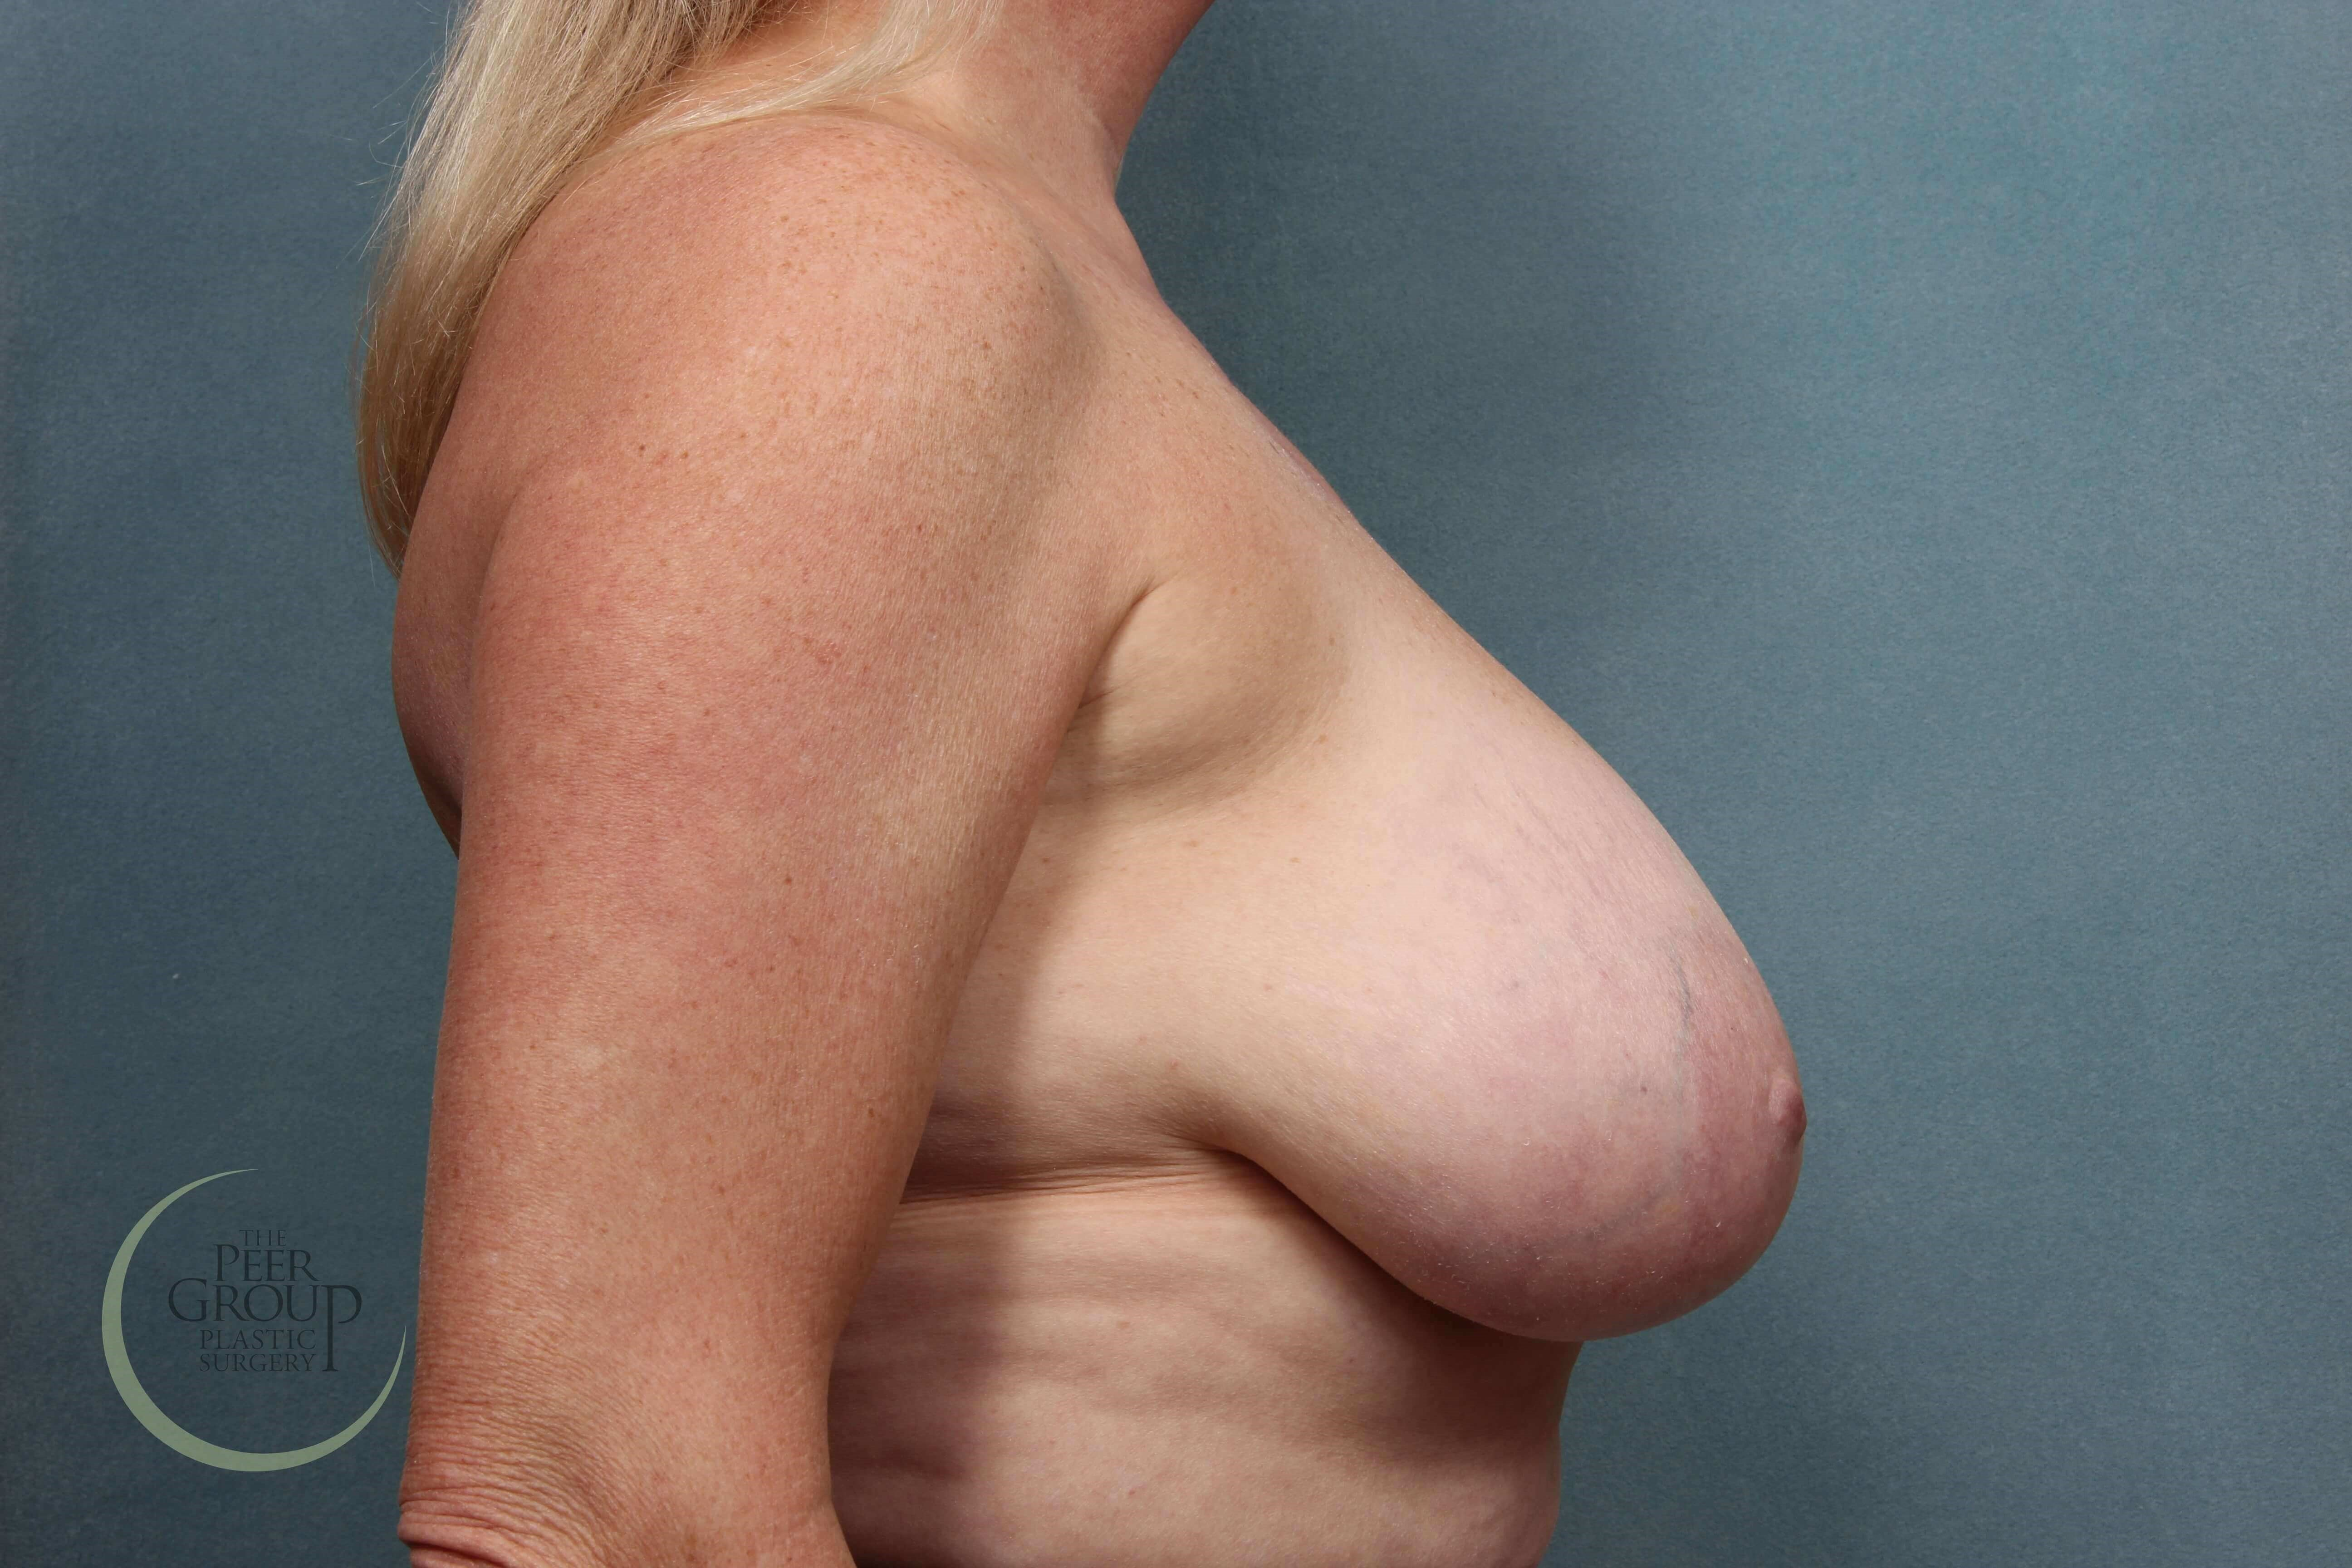 Breast Reduction Morristown NJ Before